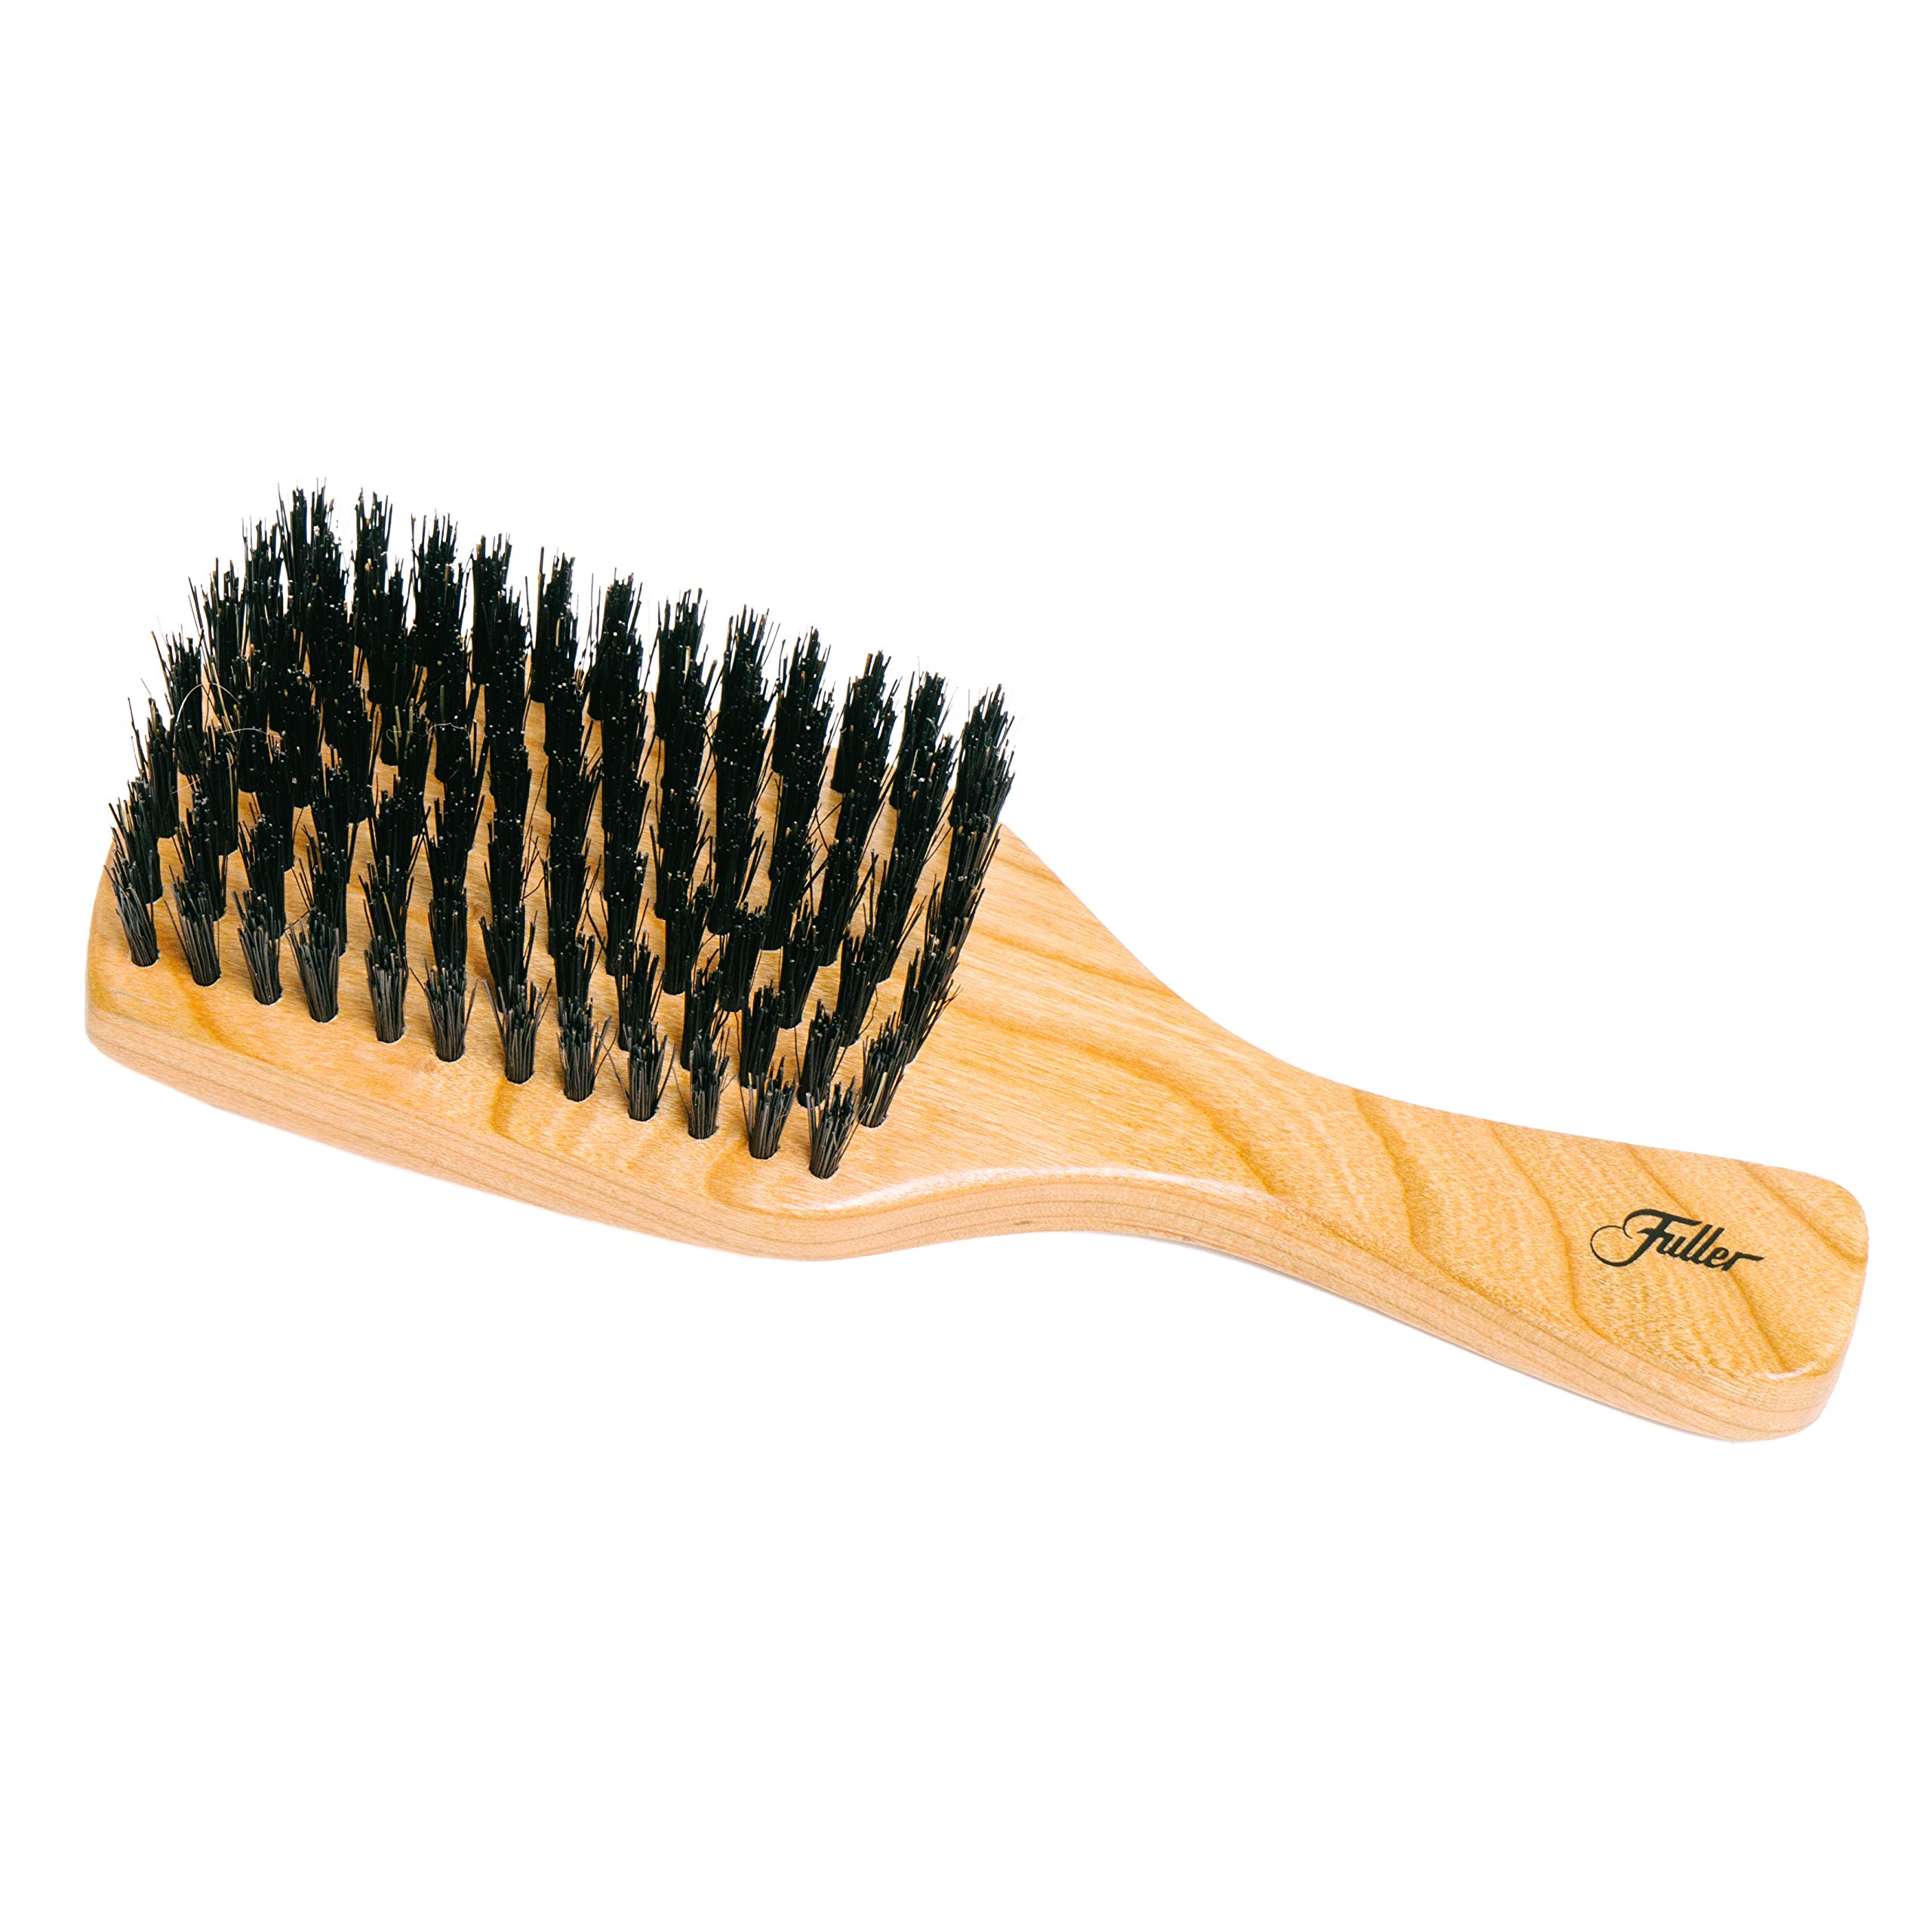 Fuller Brush Natural Cherry Wood Club Hairbrush - Hand-Crafted, Heirloom Quality Hair Brush with Firm Natural Boar Bristles for Brushing and Smoothing All Types of Hair - Made in USA by Fuller Brush